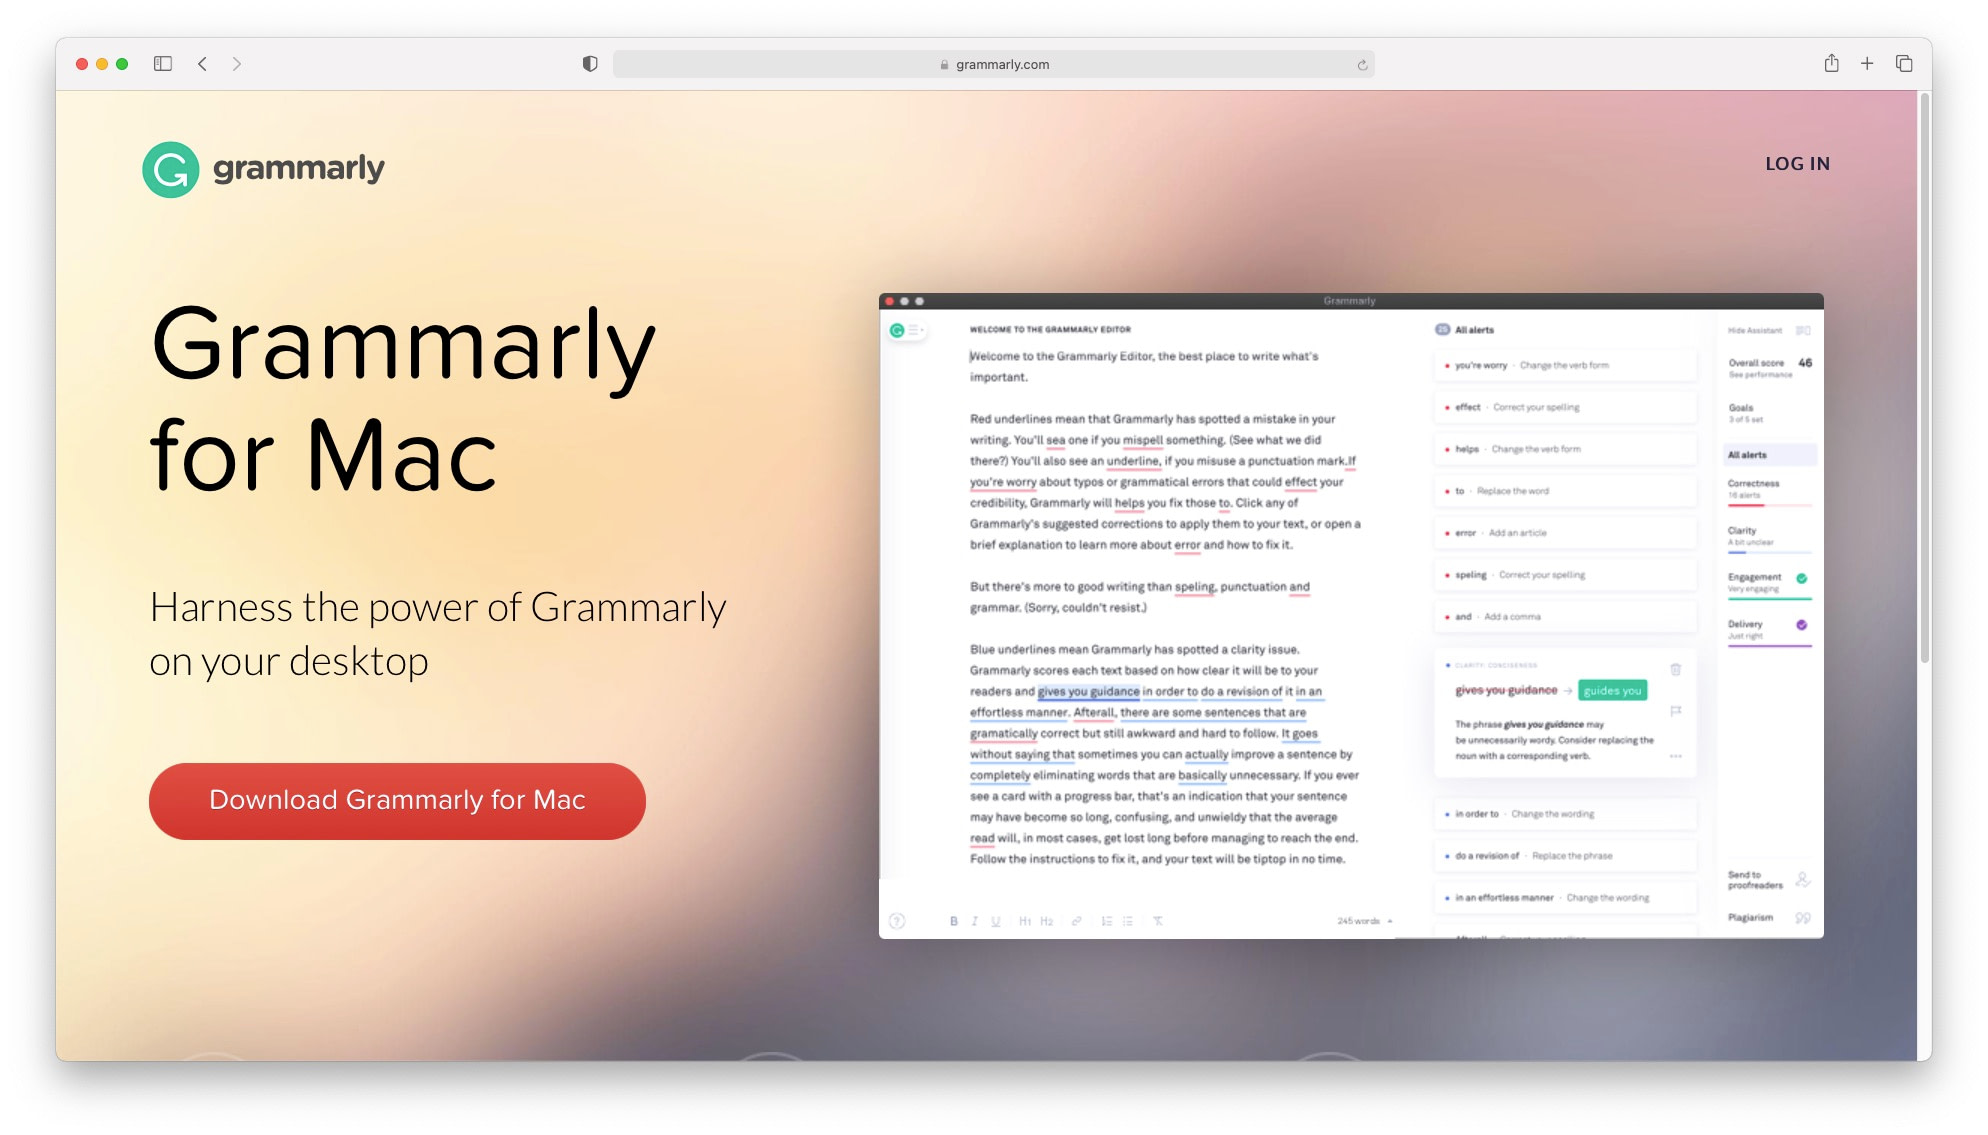 Best productivity apps for mac: Grammarly